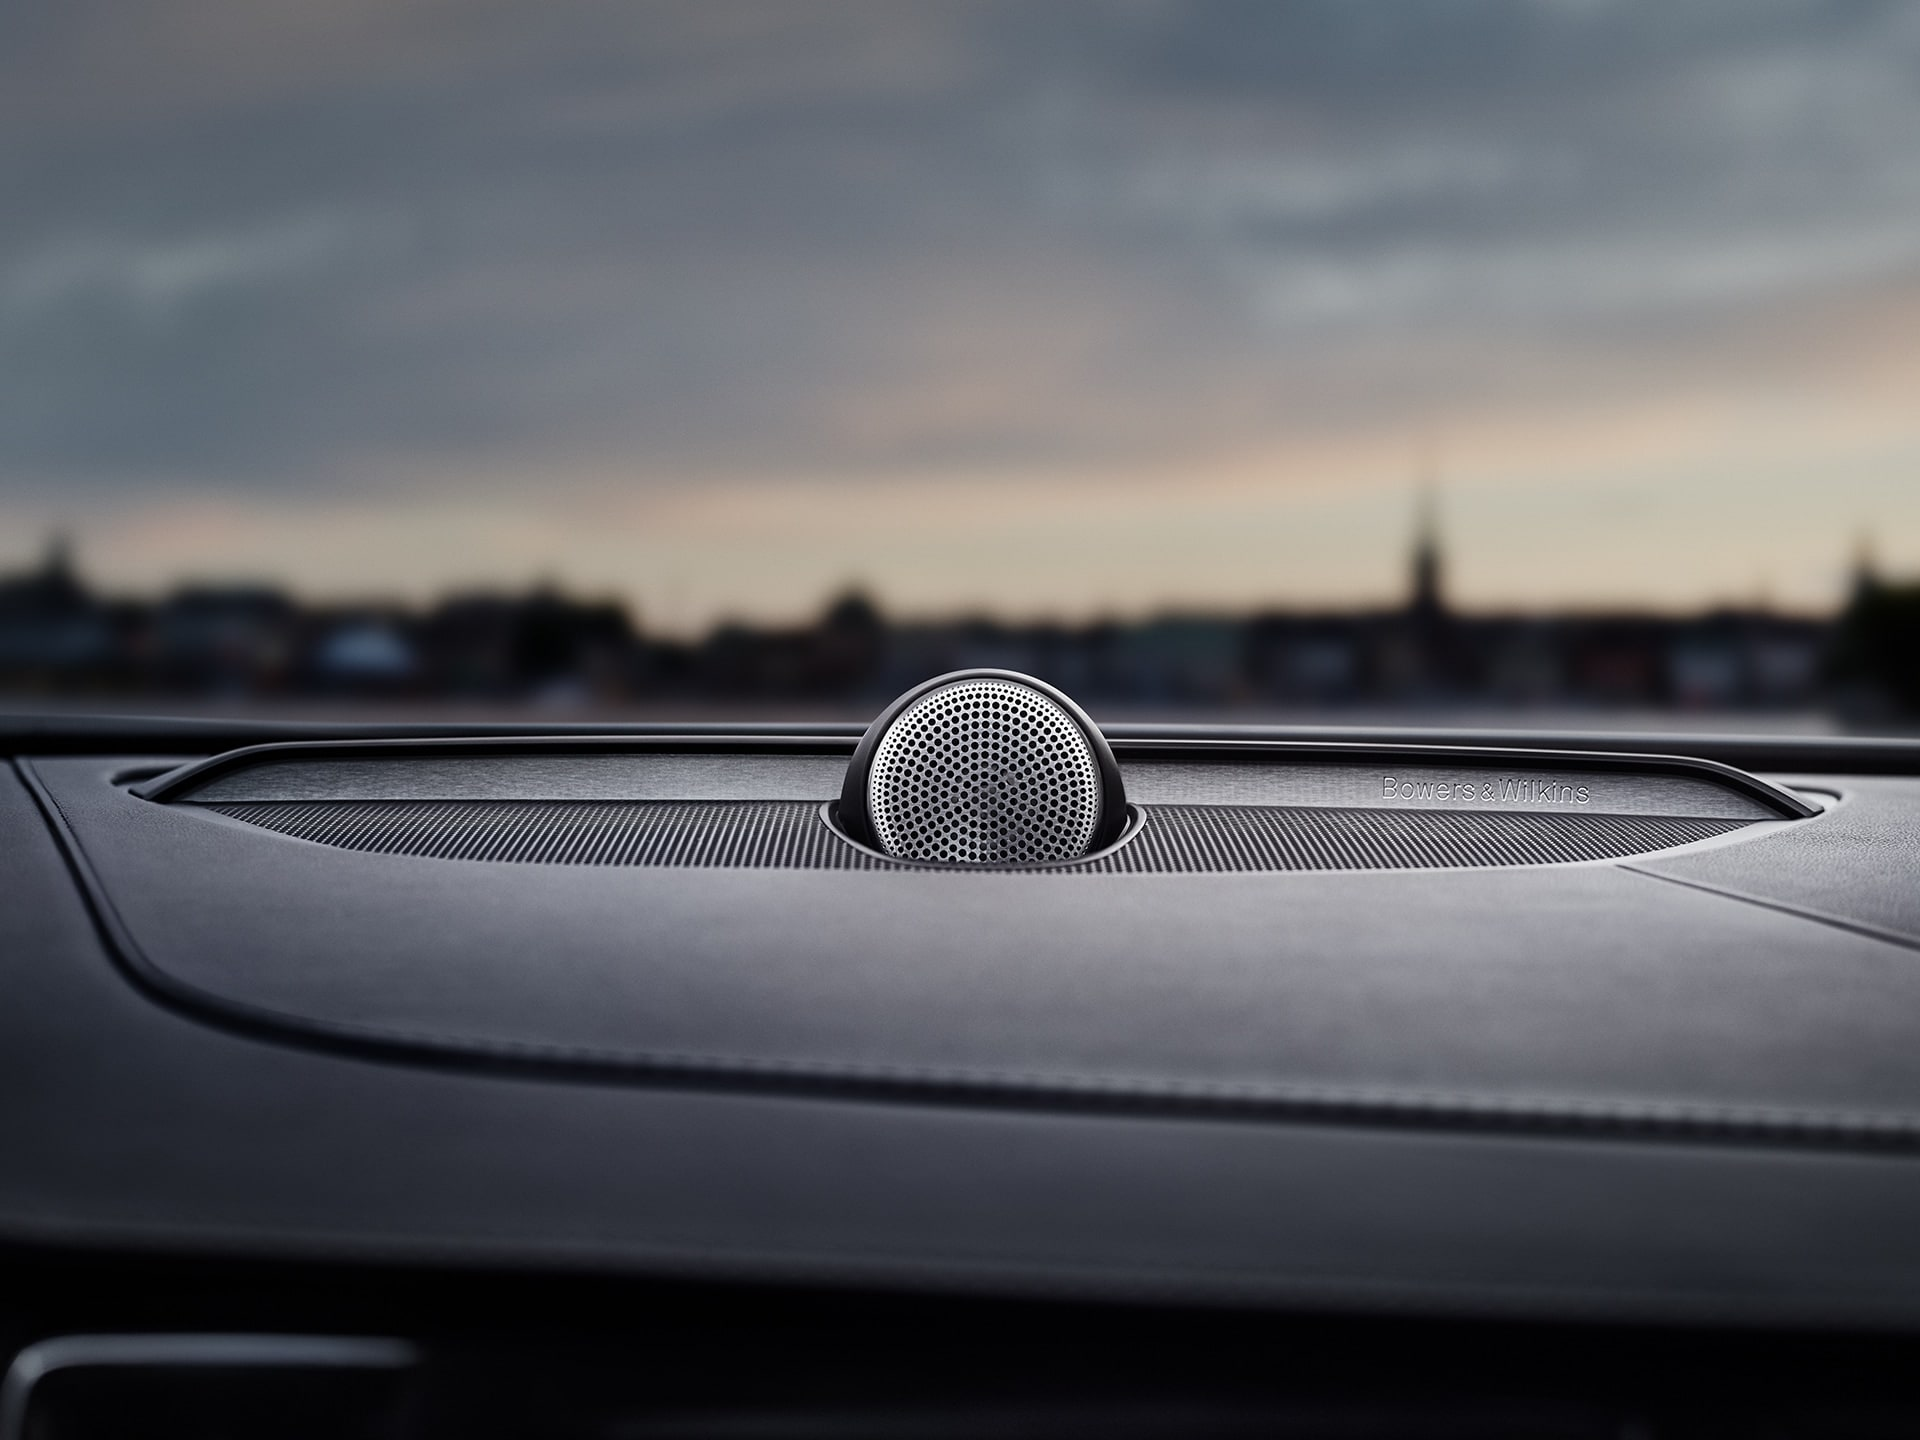 Altoparlanti Bowers & Wilkins all'interno di una Volvo XC90 Recharge.